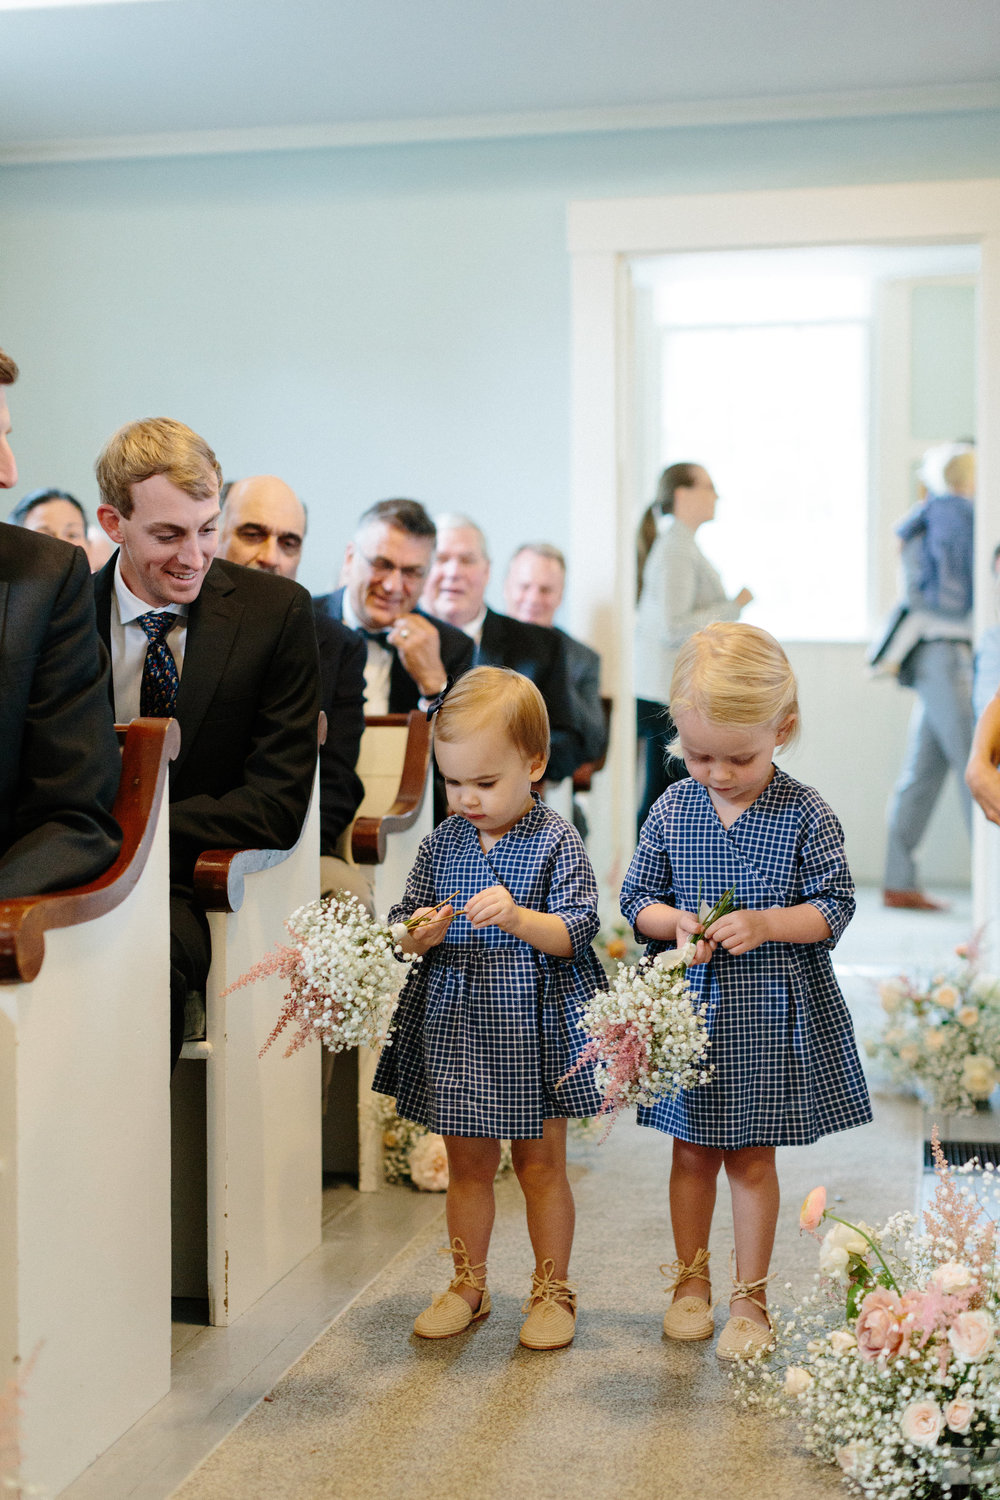 - One of my favorite photos from our ceremony. Two of our five precious flower girls, Charley Kettler and Stella Blair making their way down the aisle at their own pace. They looked so sweet in our custom Raffia Lace Ups, and custom Smiling Button dresses.